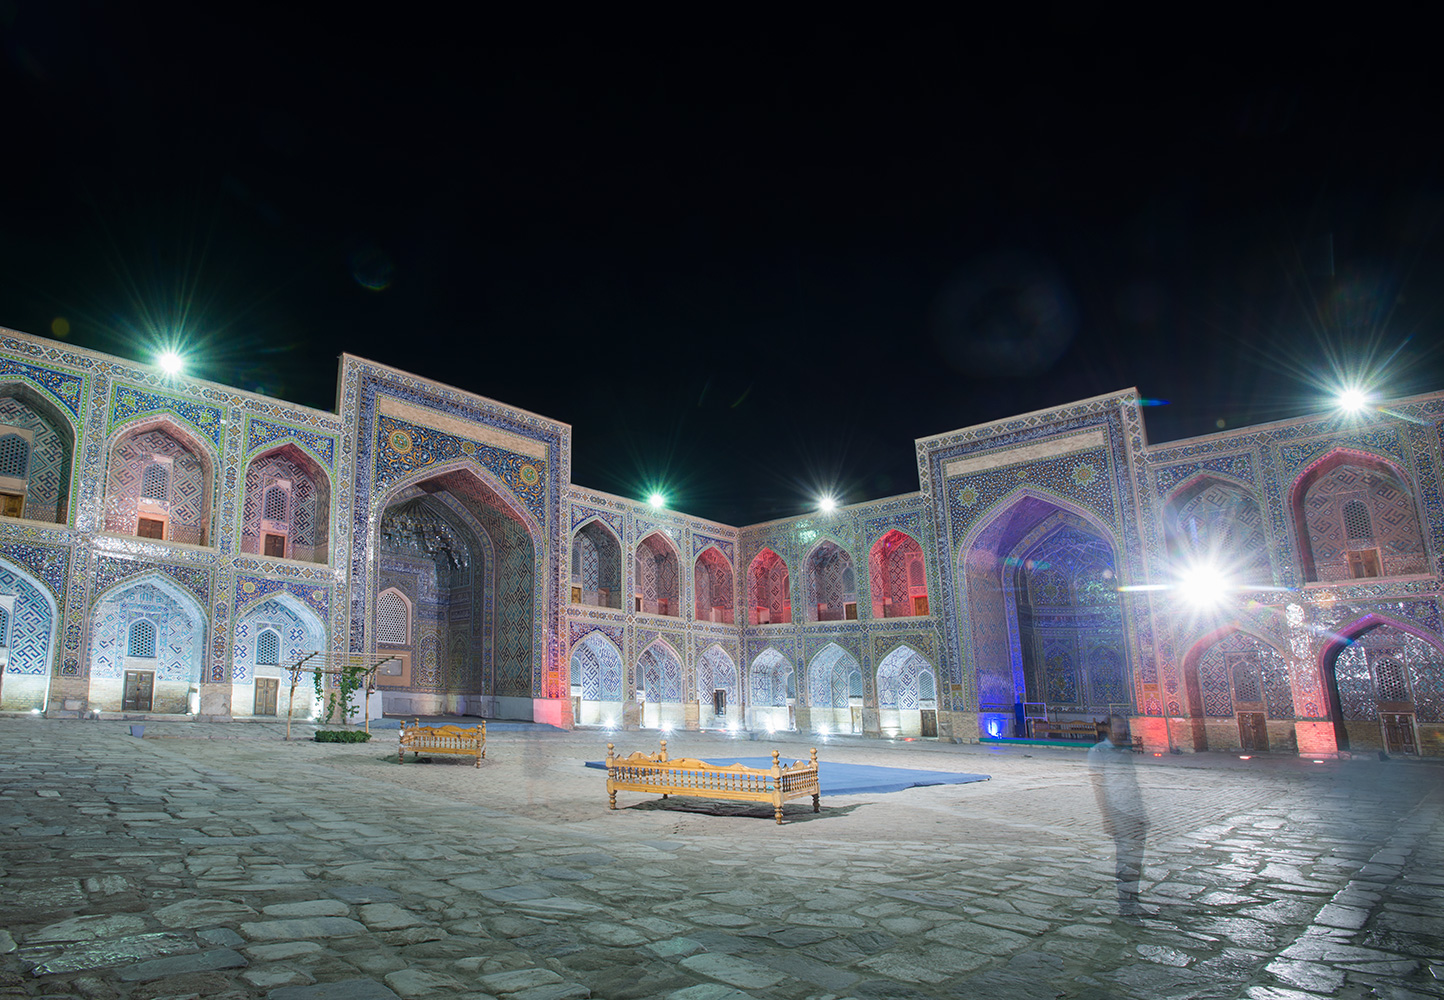 The courtyard, floodlit at night